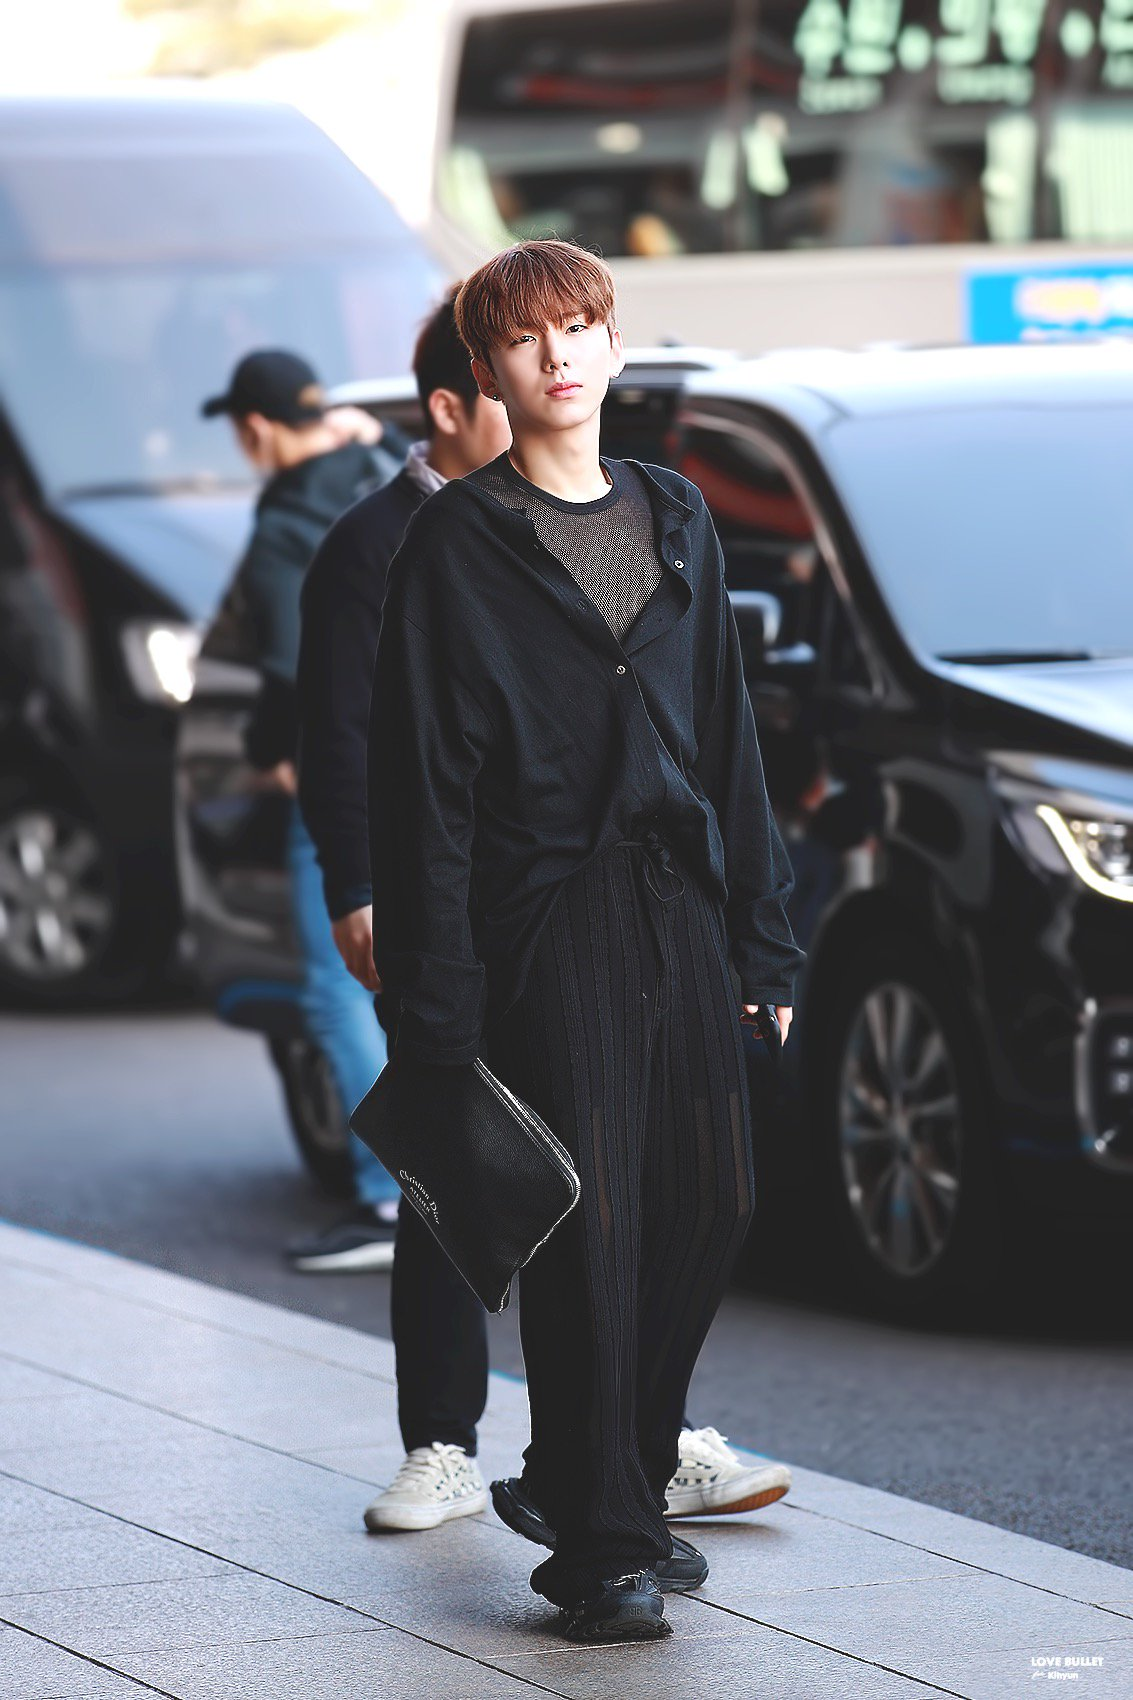 monsta x fashion, monsta x see through, kihyun fashion, kihyun see through